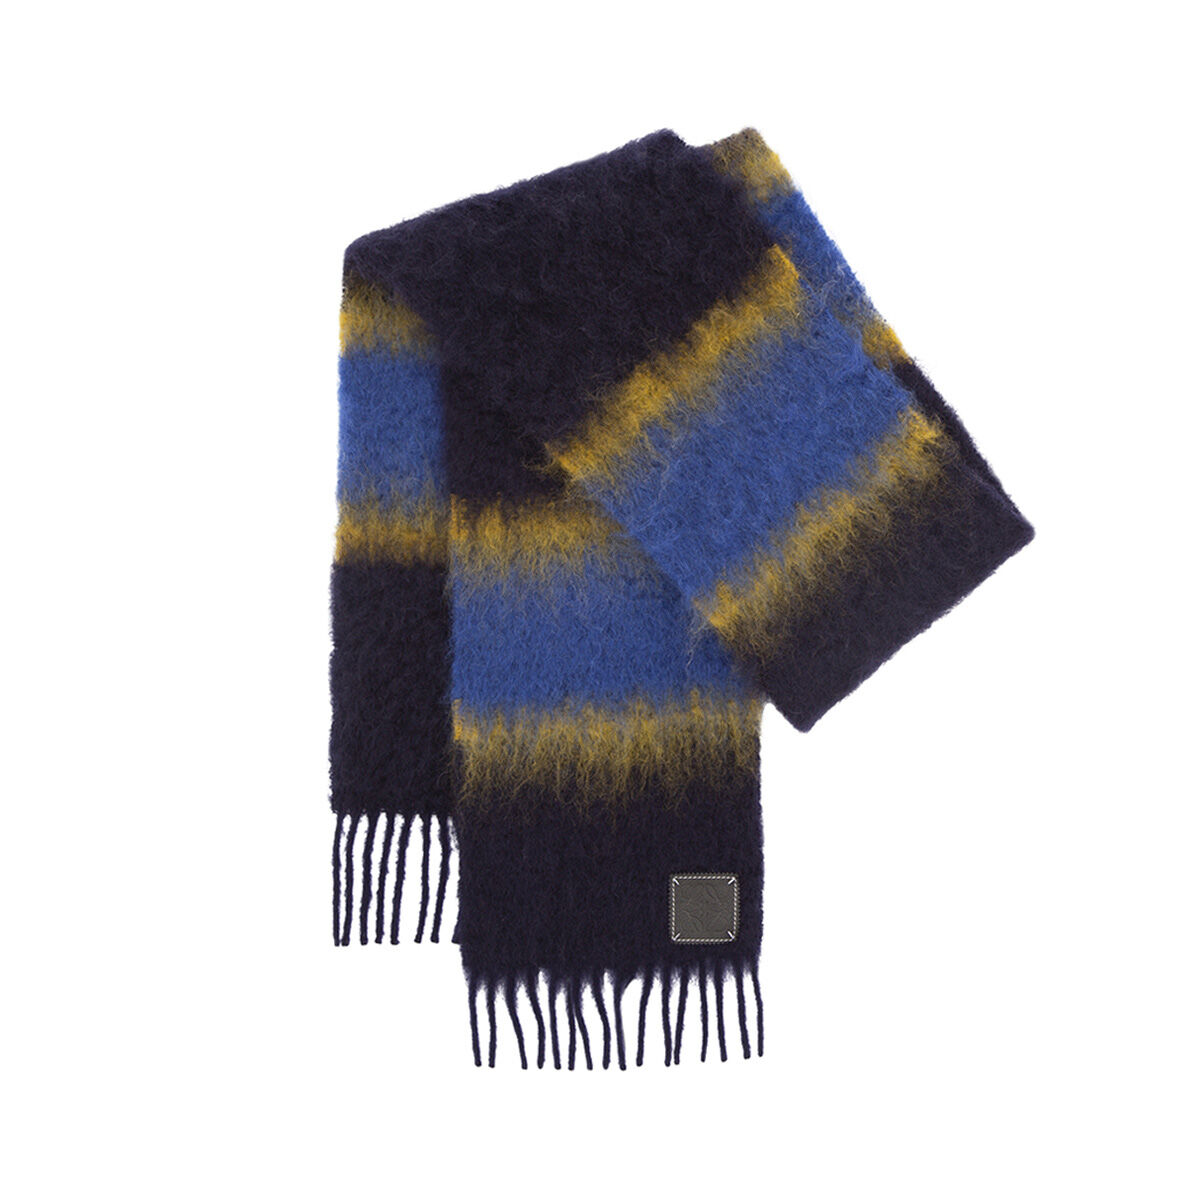 LOEWE 23X185 Scarf Varsity Stripes Yellow/Navy all